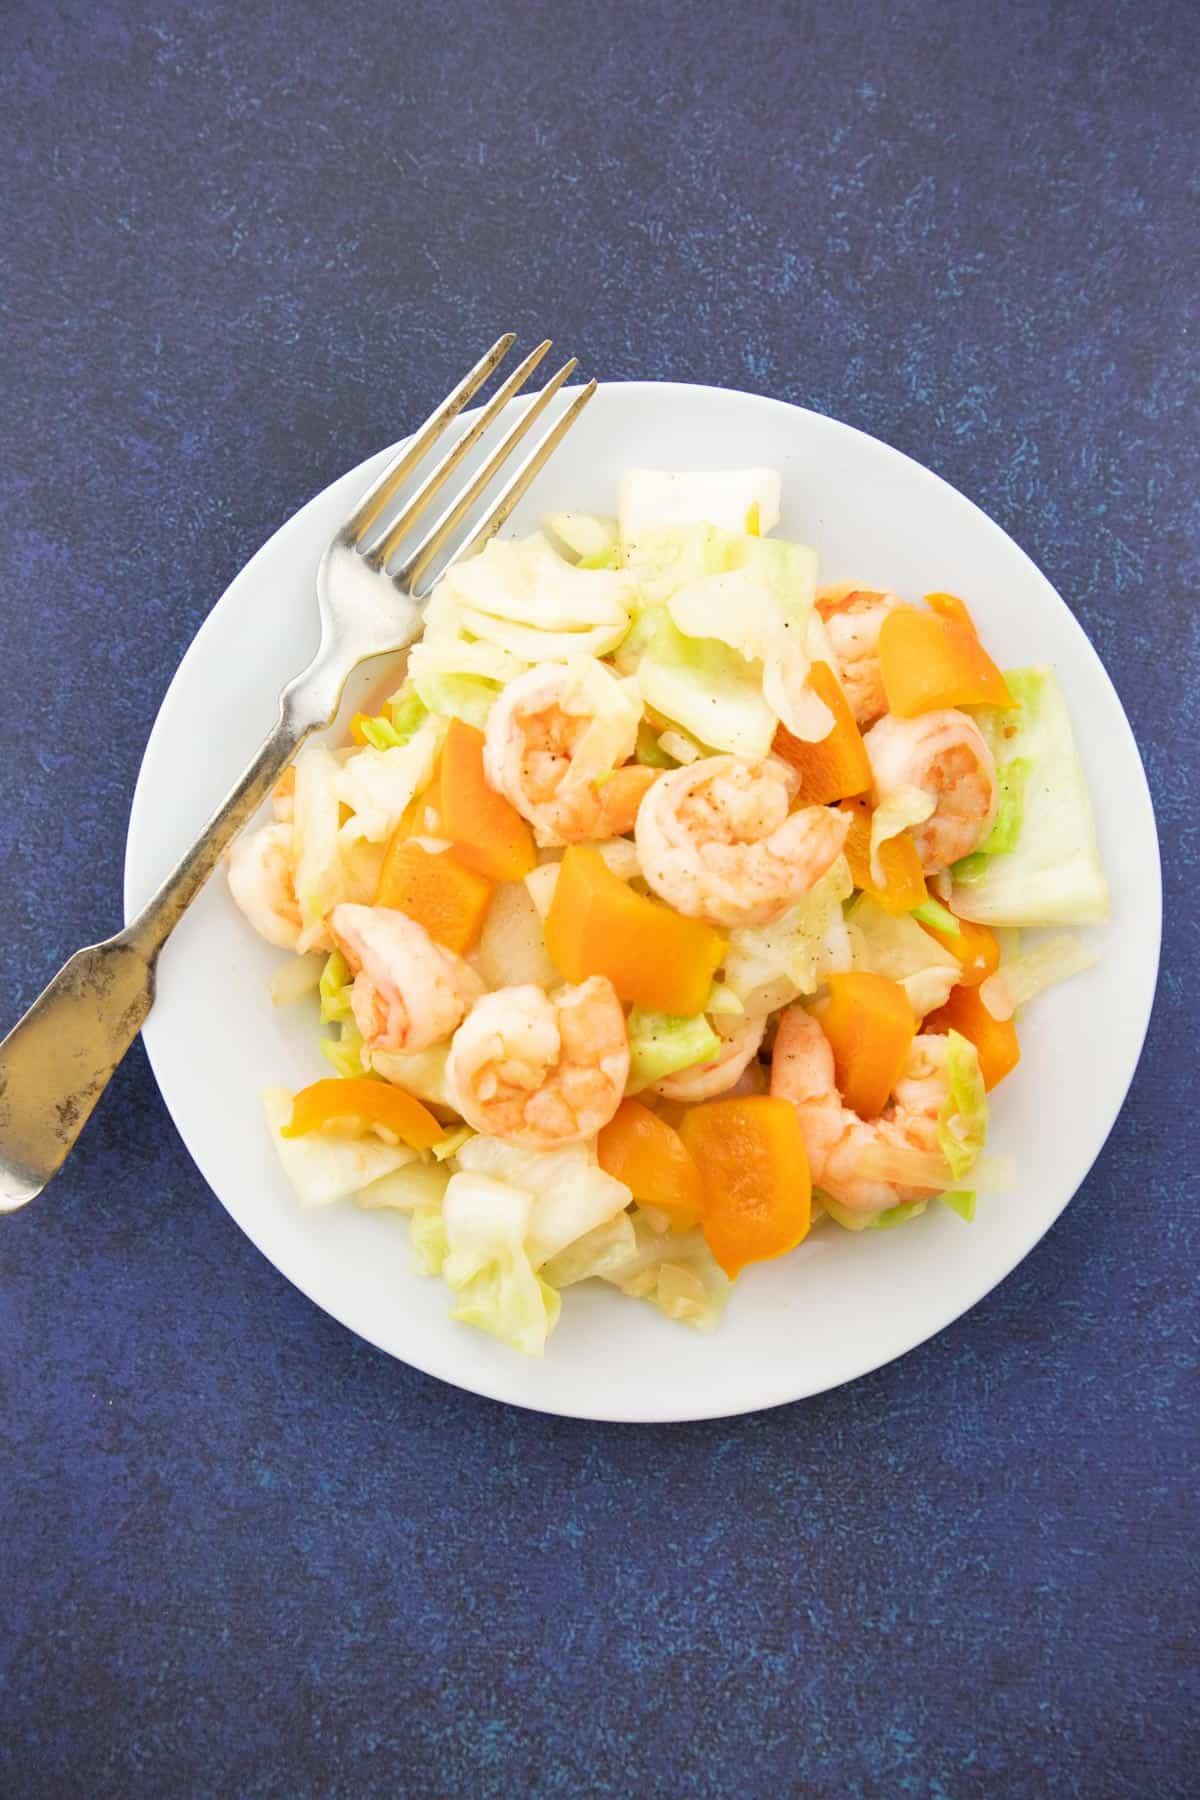 sauteed cabbage with shrimp on white plate with fork with blue background.